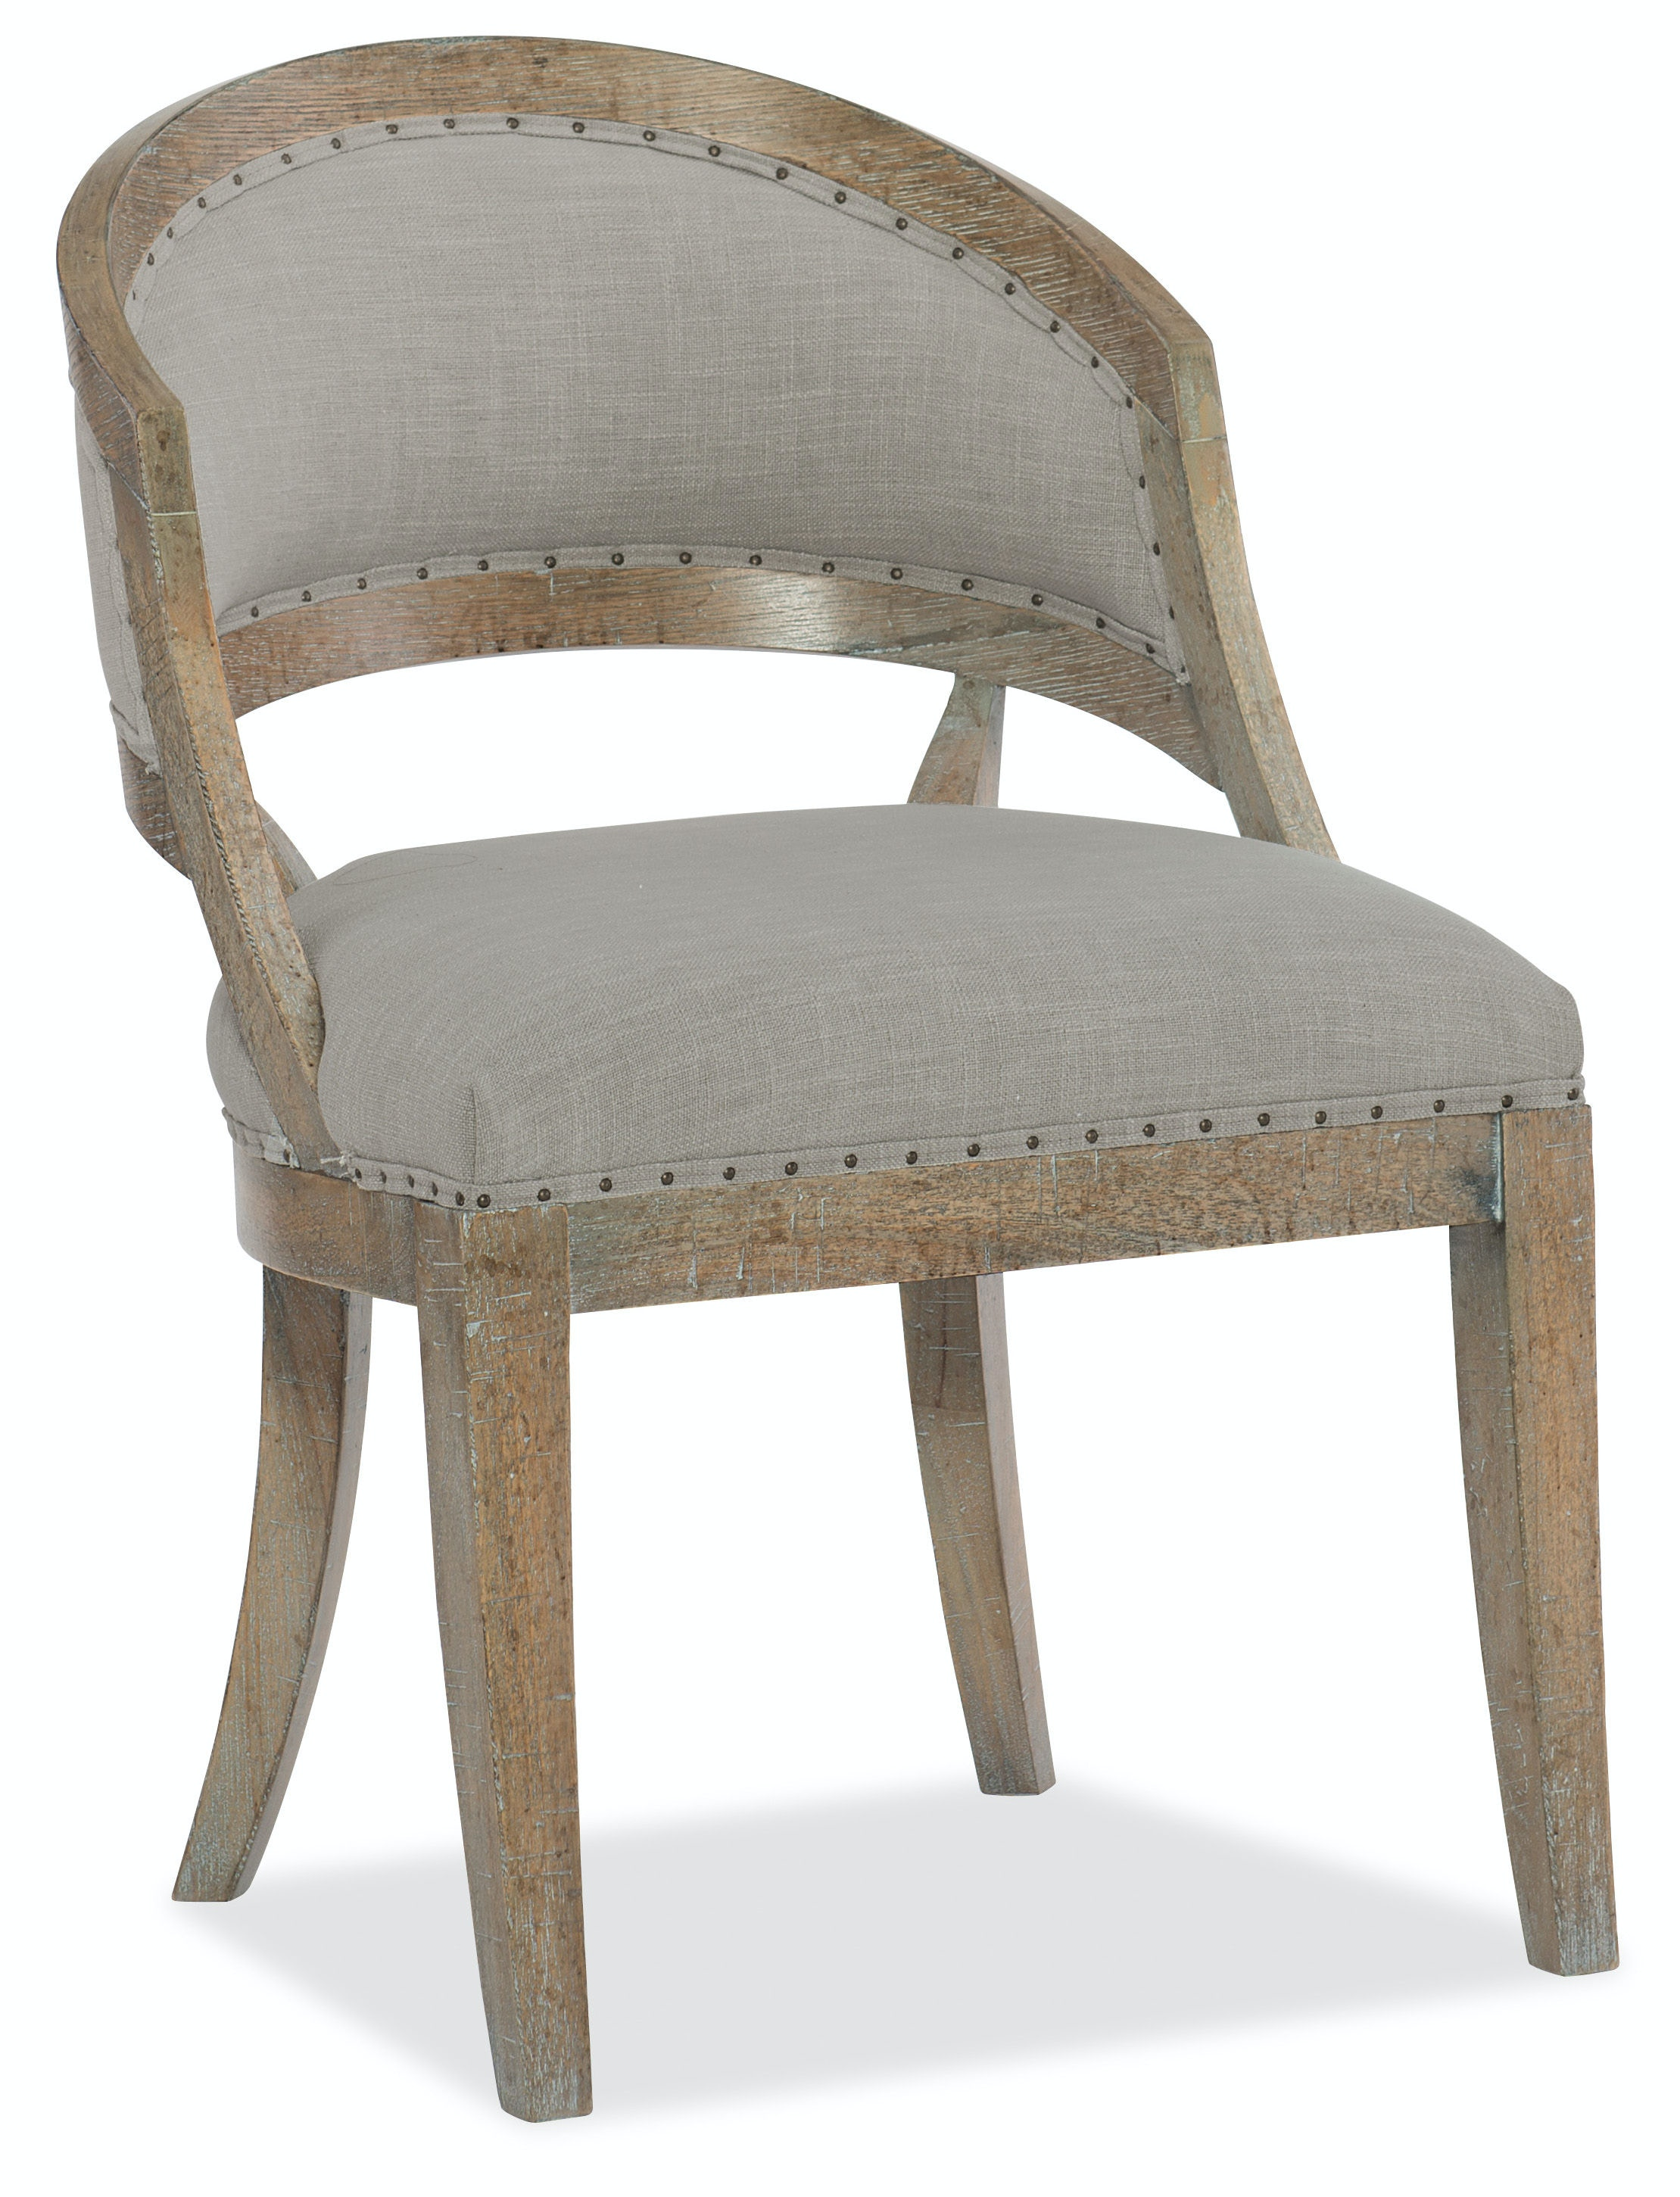 Hooker Furniture Boheme Garnier Barrel Back Chair 5750 75300 MWD